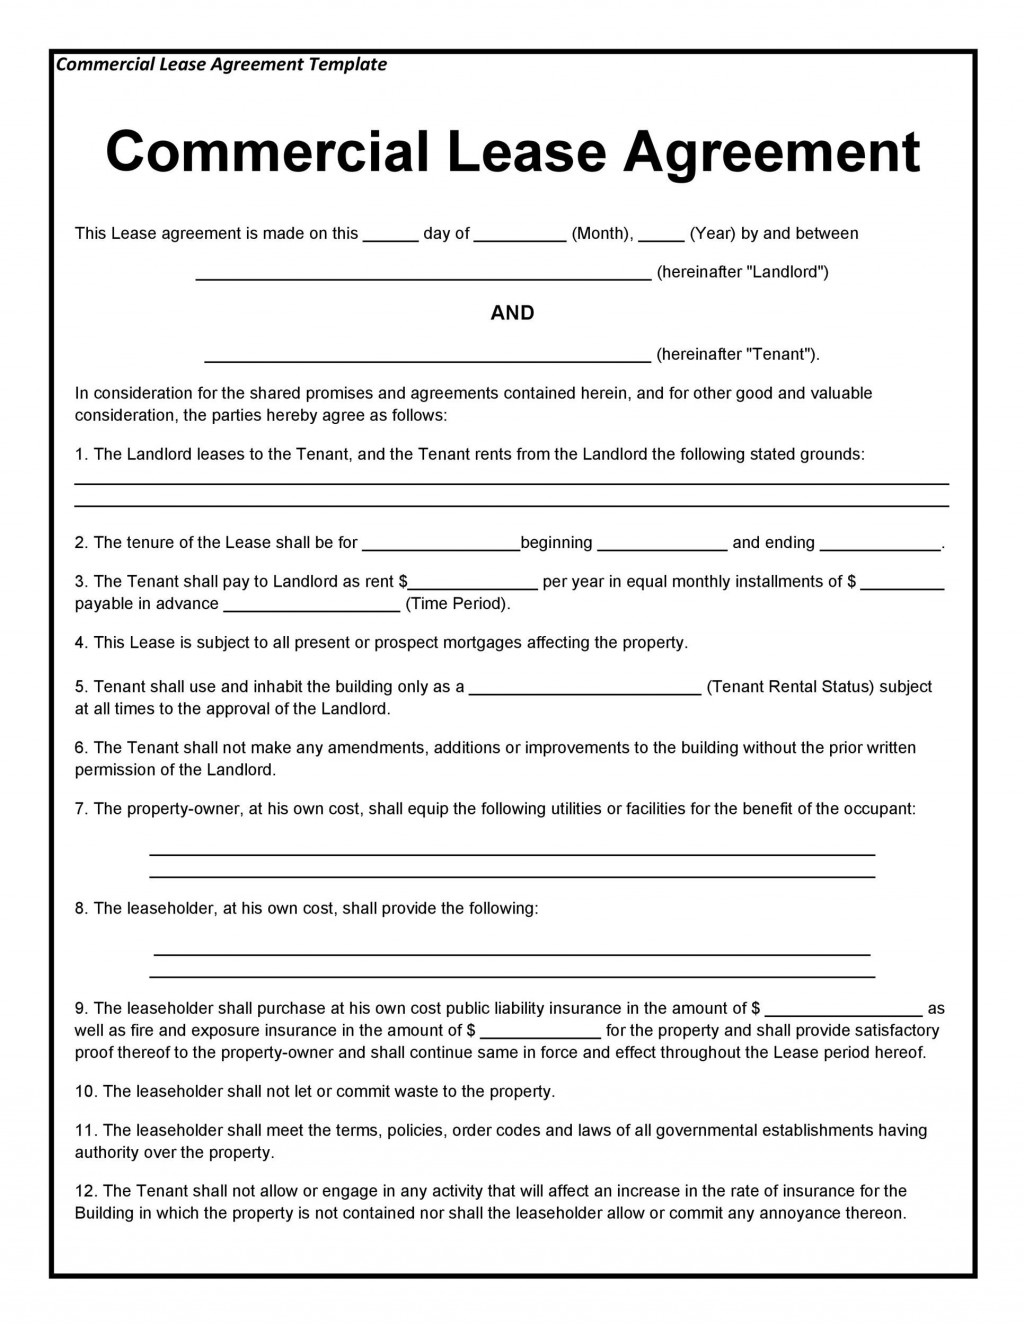 005 Outstanding Rental House Contract Template Free Image  Agreement Form Property LeaseLarge